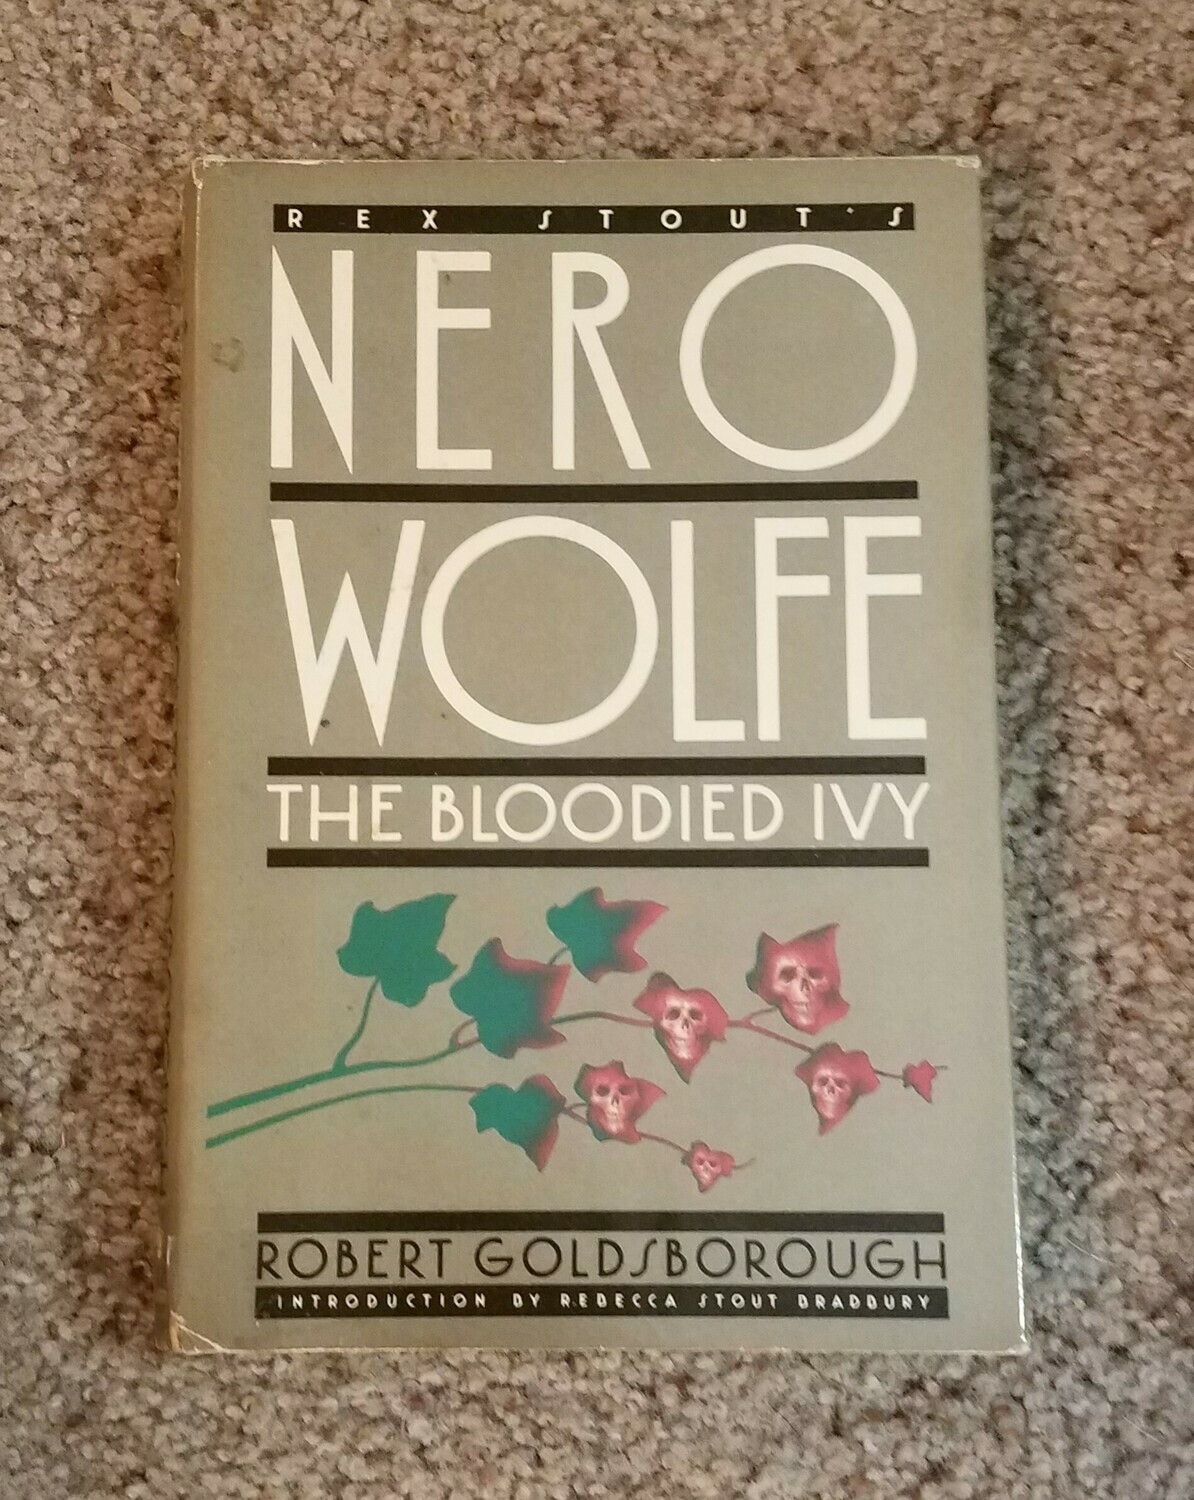 Nero Wolfe: The Bloodied Ivy by Robert Goldsborough